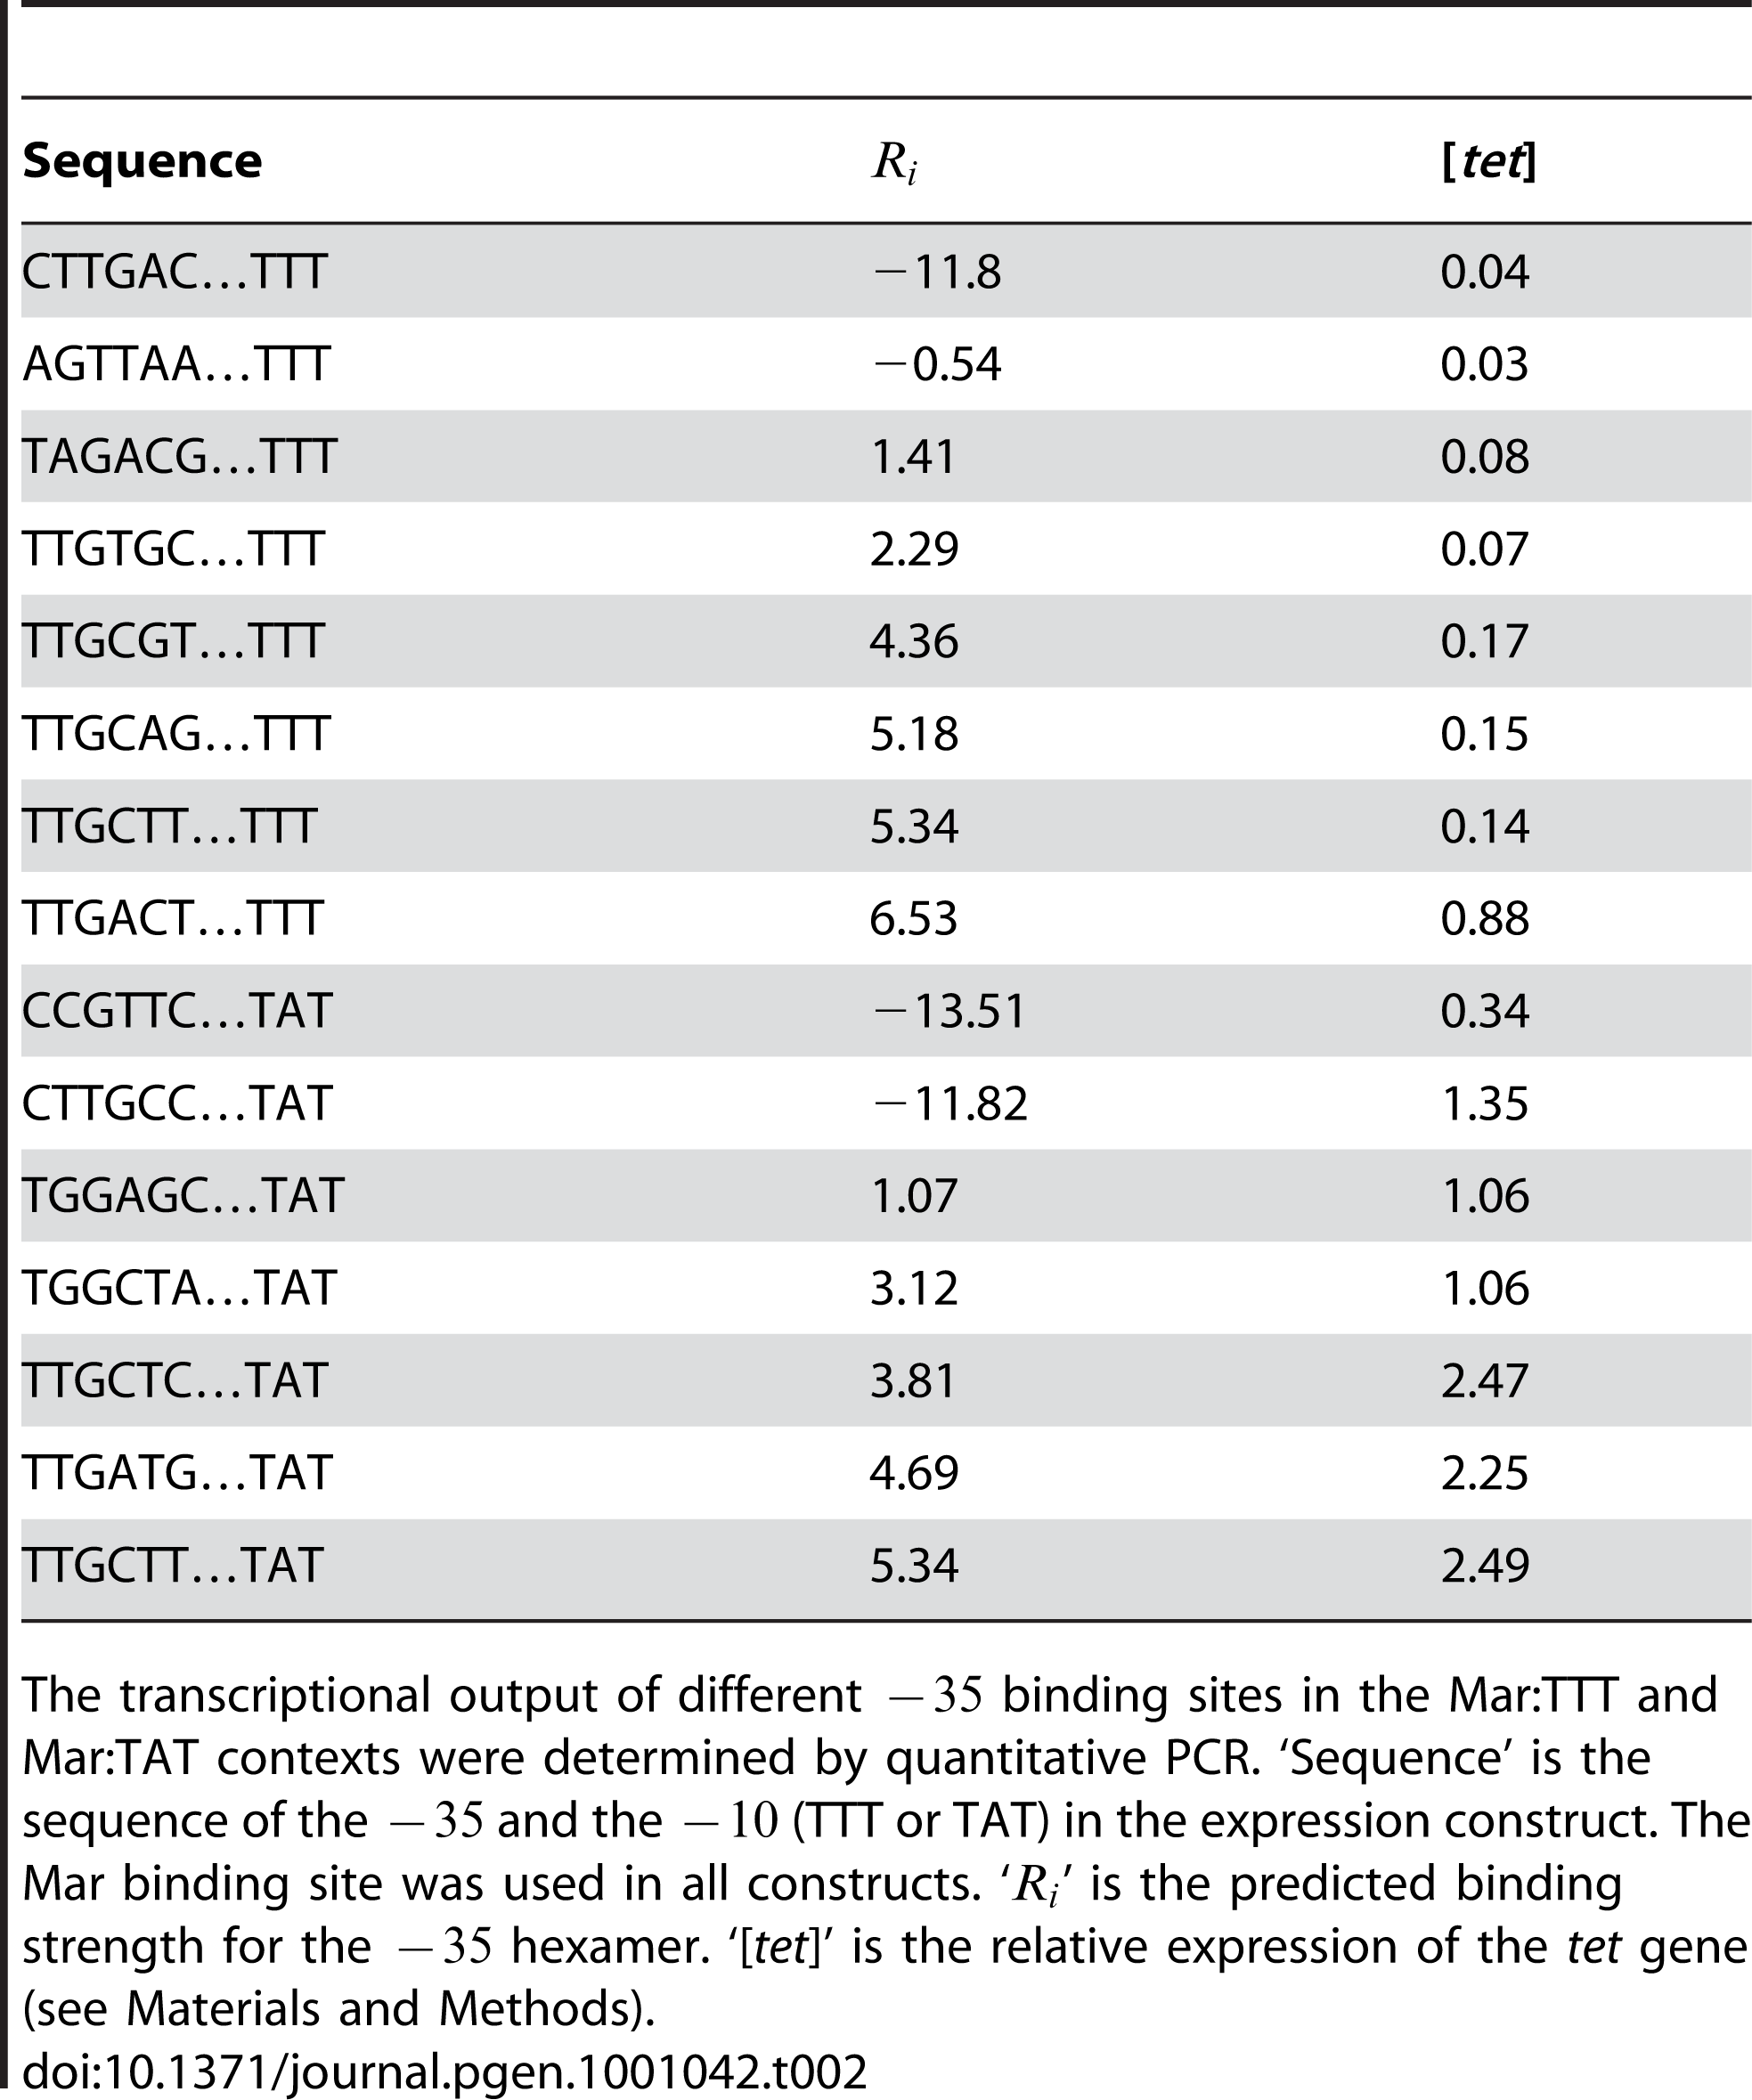 Direct measurement of transcriptional output for different −35 binding sites by QPCR.